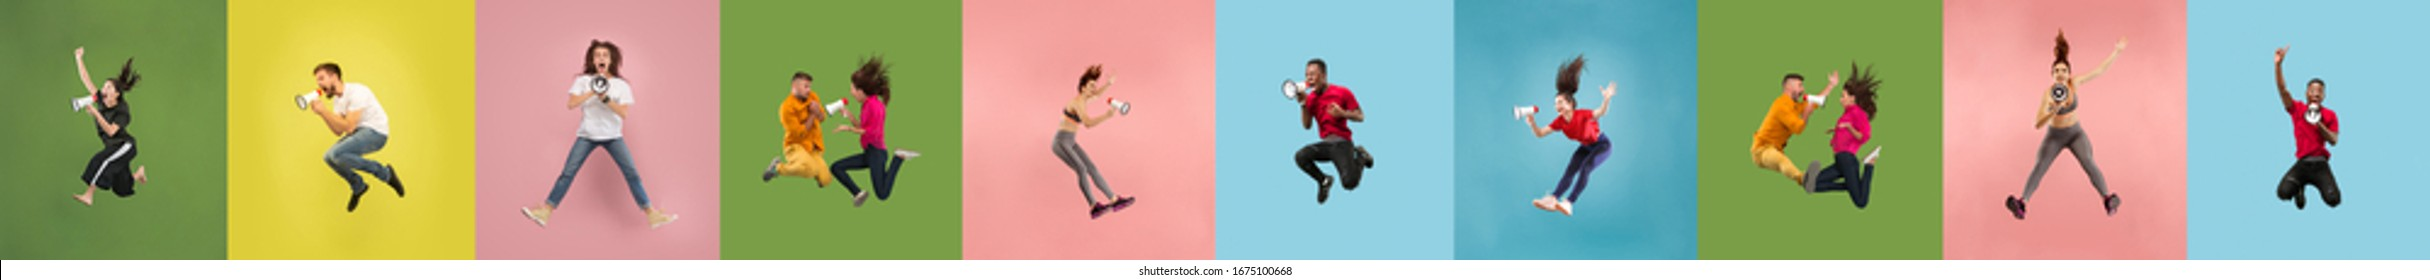 Collage of 8 young emotional jumping people on multicolored bright background. Concept of human emotions, facial expression, sales. Header, banner or flyer. Sport, finance. Calling with megaphone.